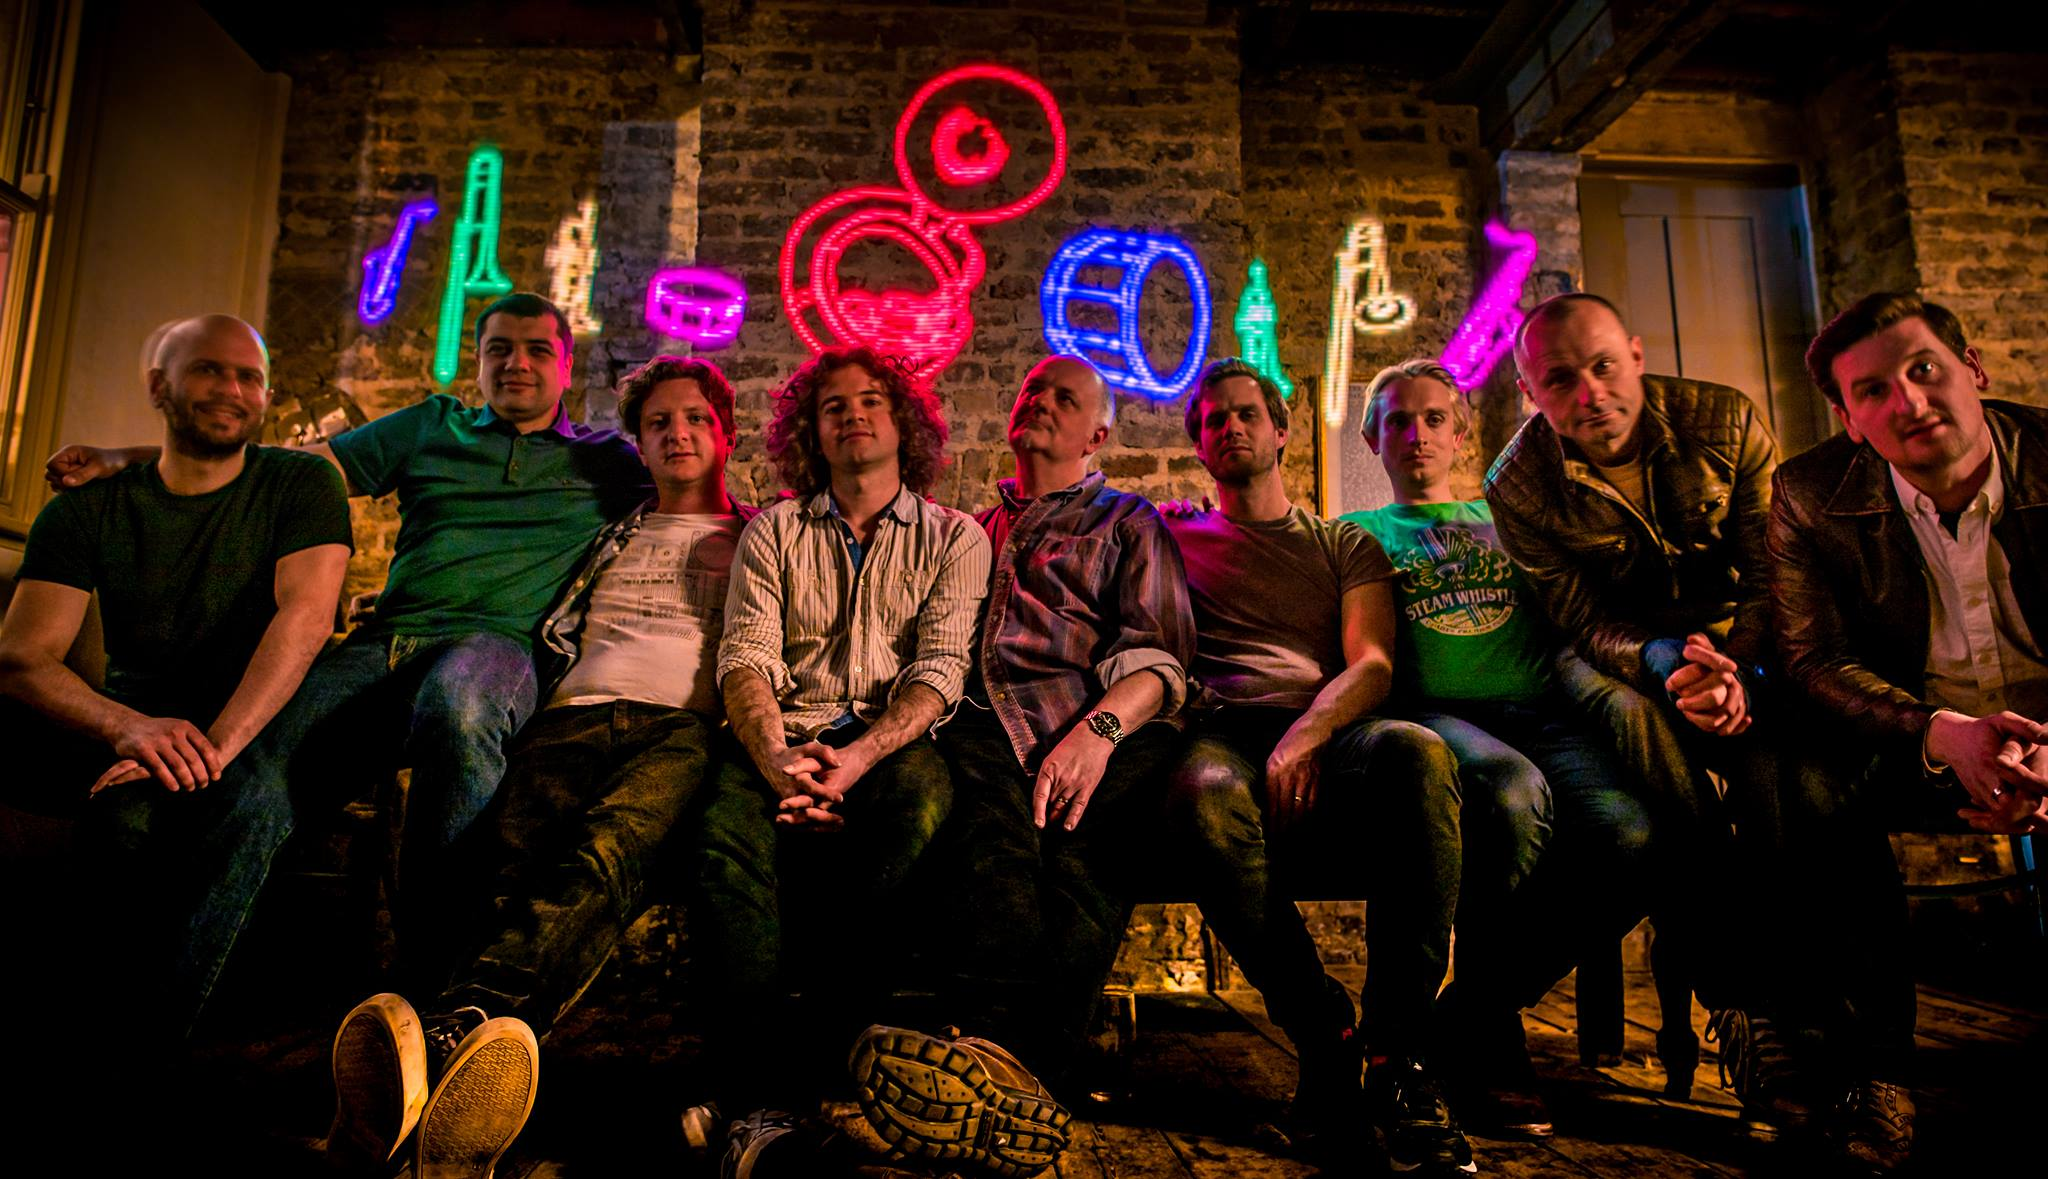 Hackney Colliery Band - Henri-Pierre Noël All Of The Lights